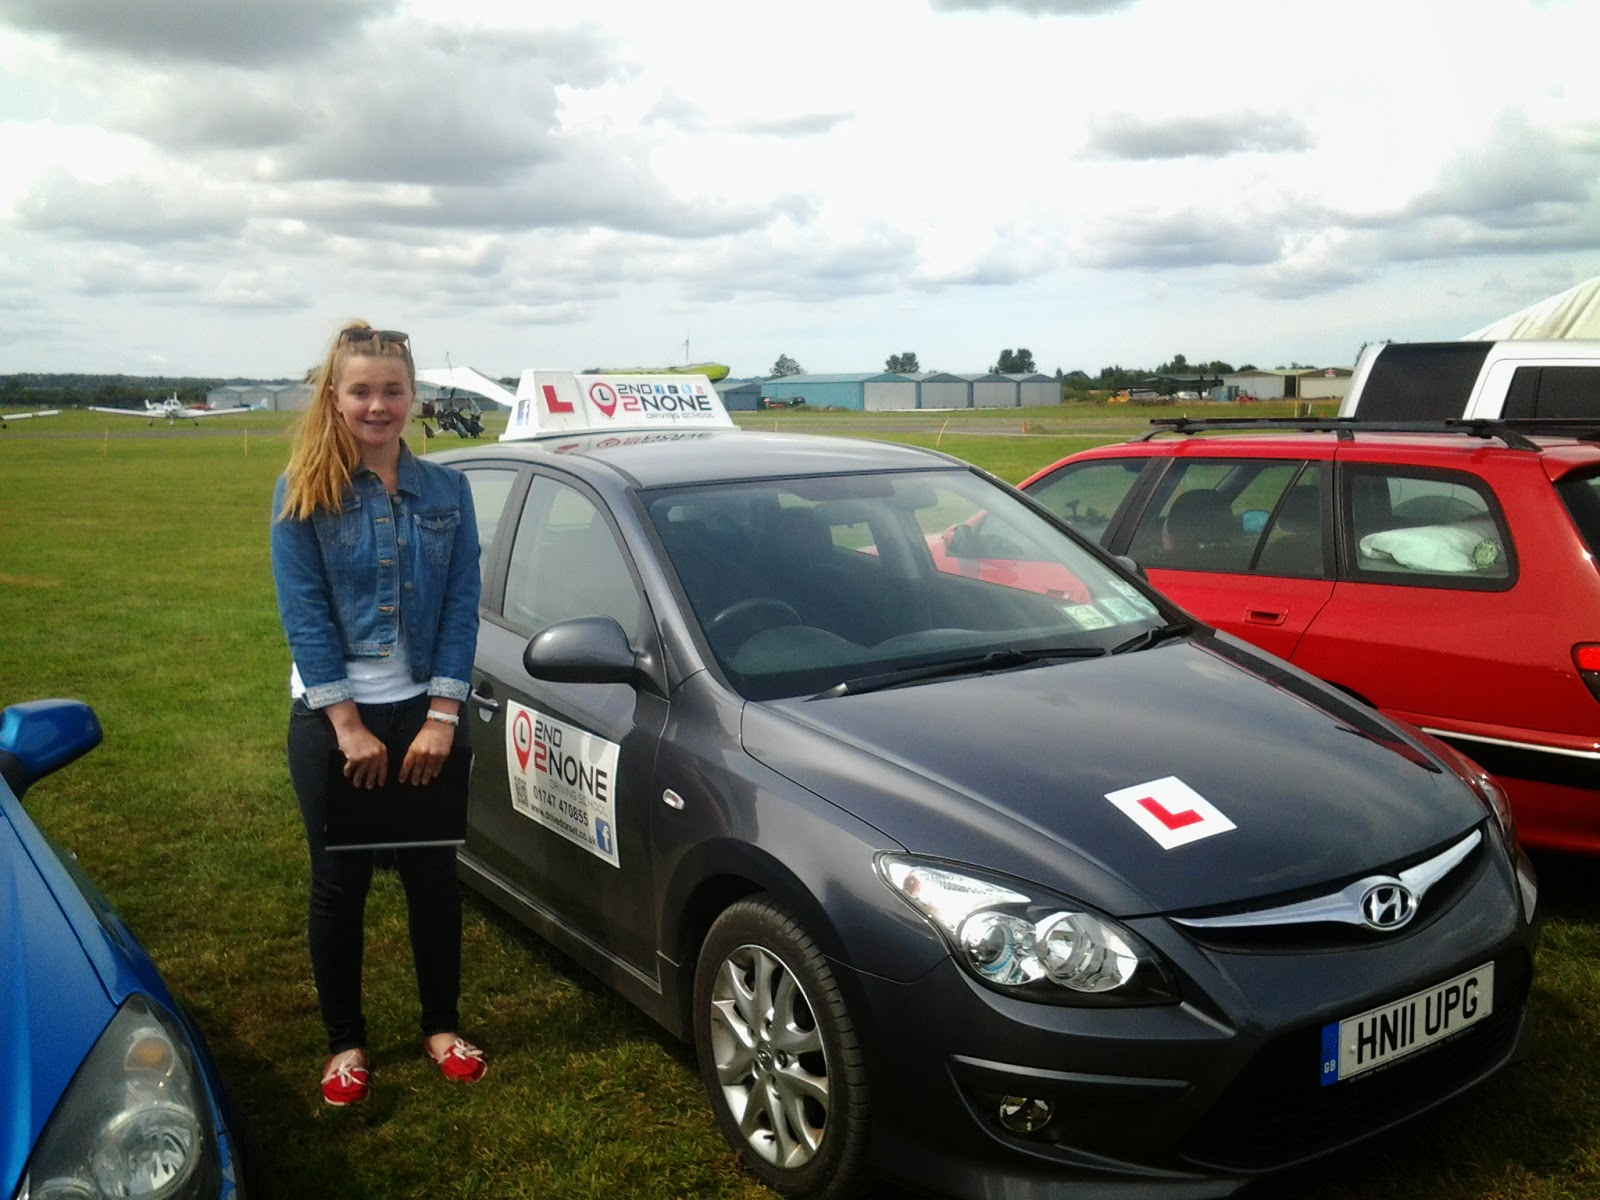 Another Great Under 17s Driving Session at Henstridge